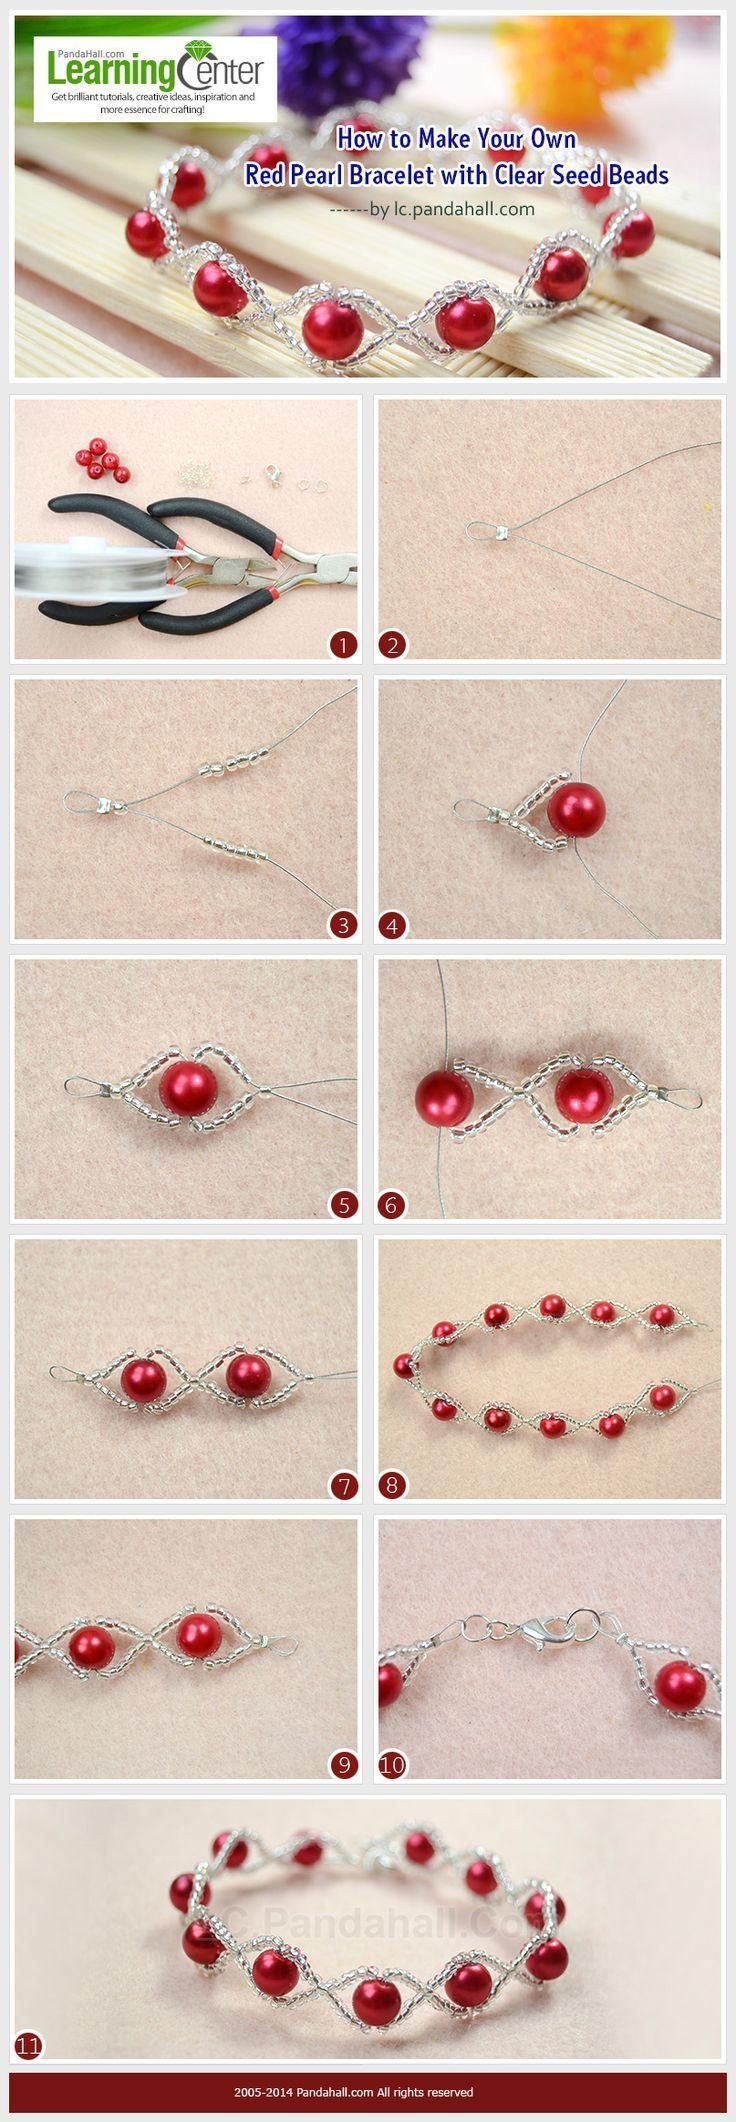 How to Make Your Own Red Pearl Bracelet with Clear Seed Beads   See more about Pearl Bracelets, Seed Beads and Bracelets.